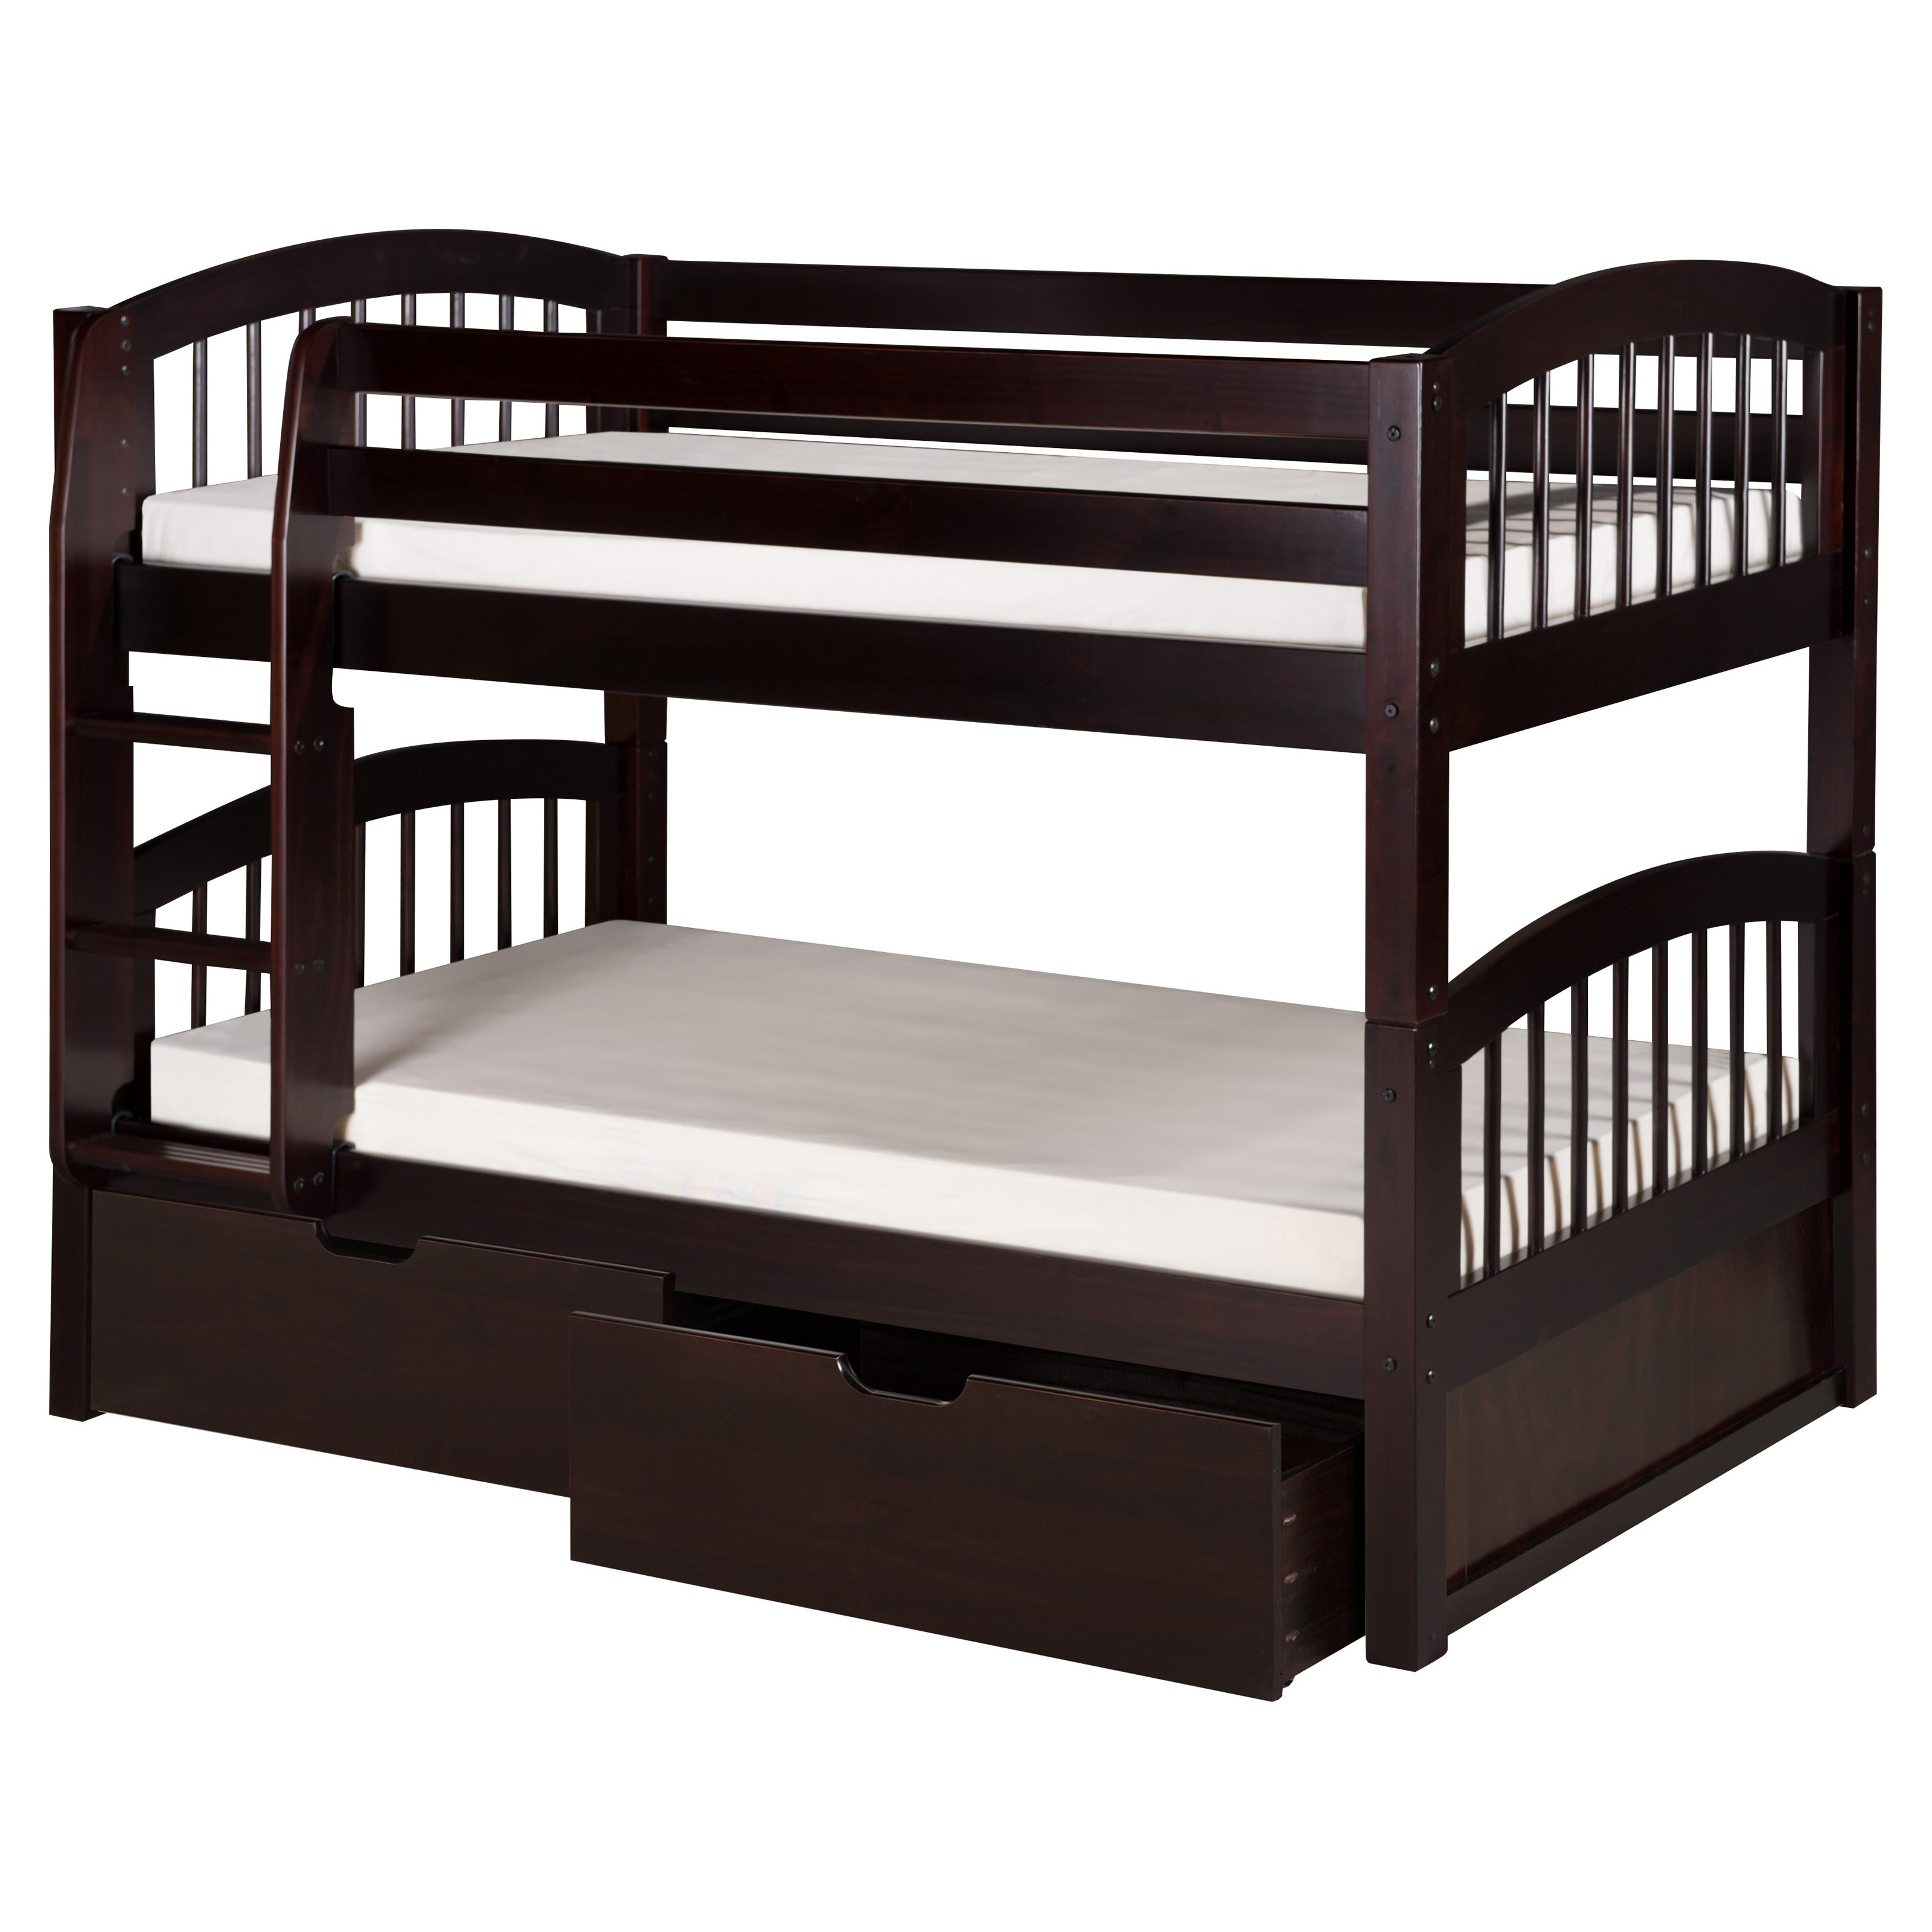 Camaflexi Arch Spindle Headboard Twin over Twin Low Bunk Bed